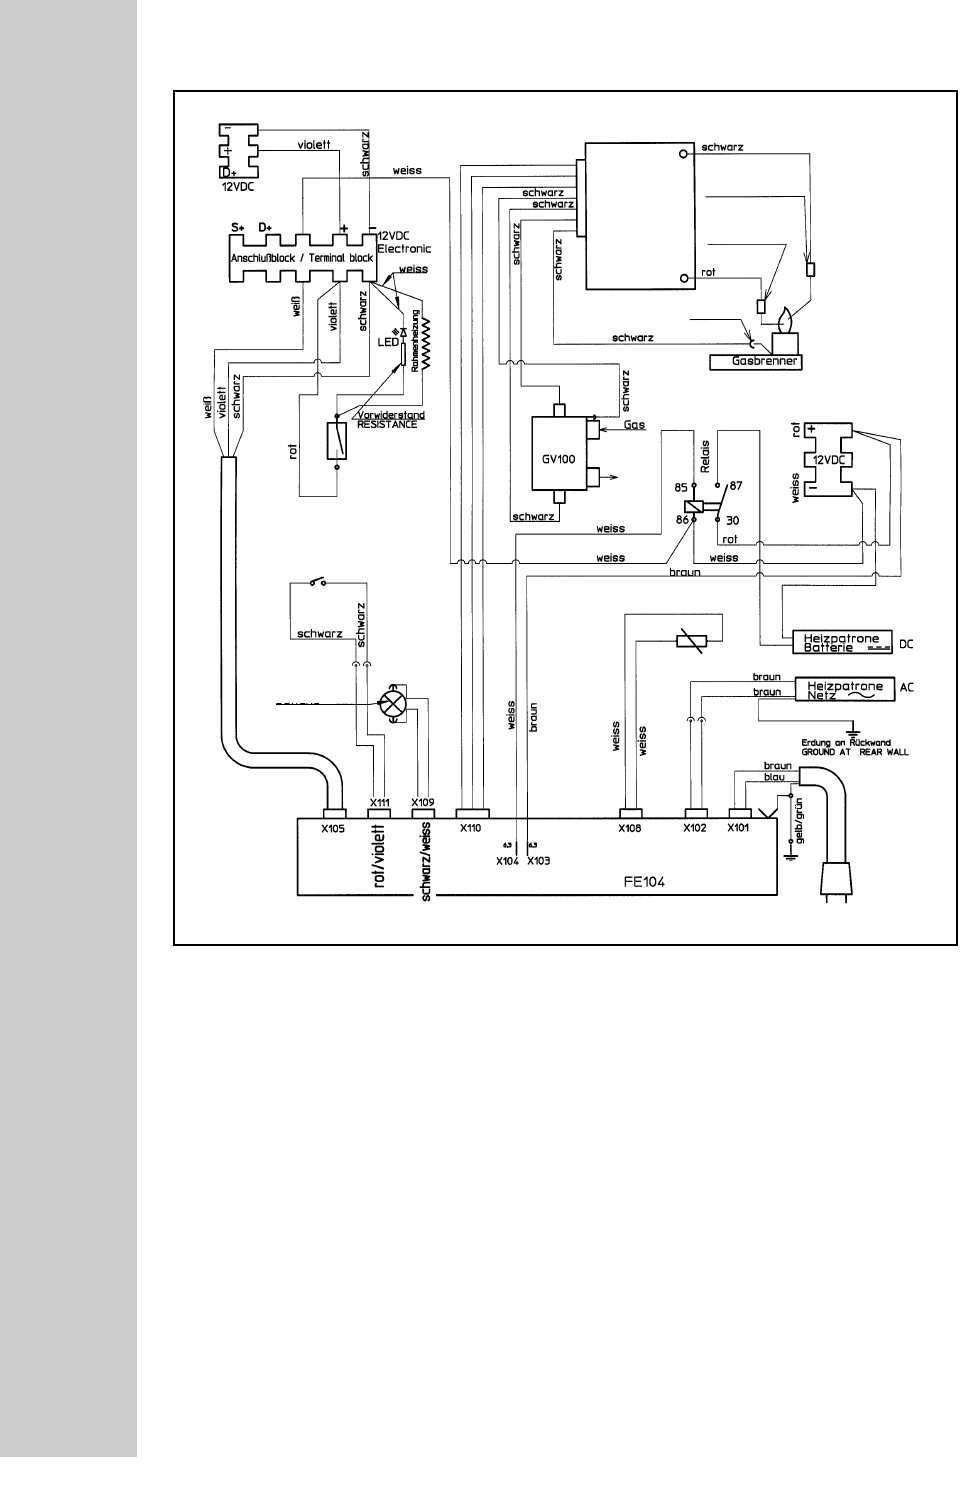 switch network diagram for game electronics